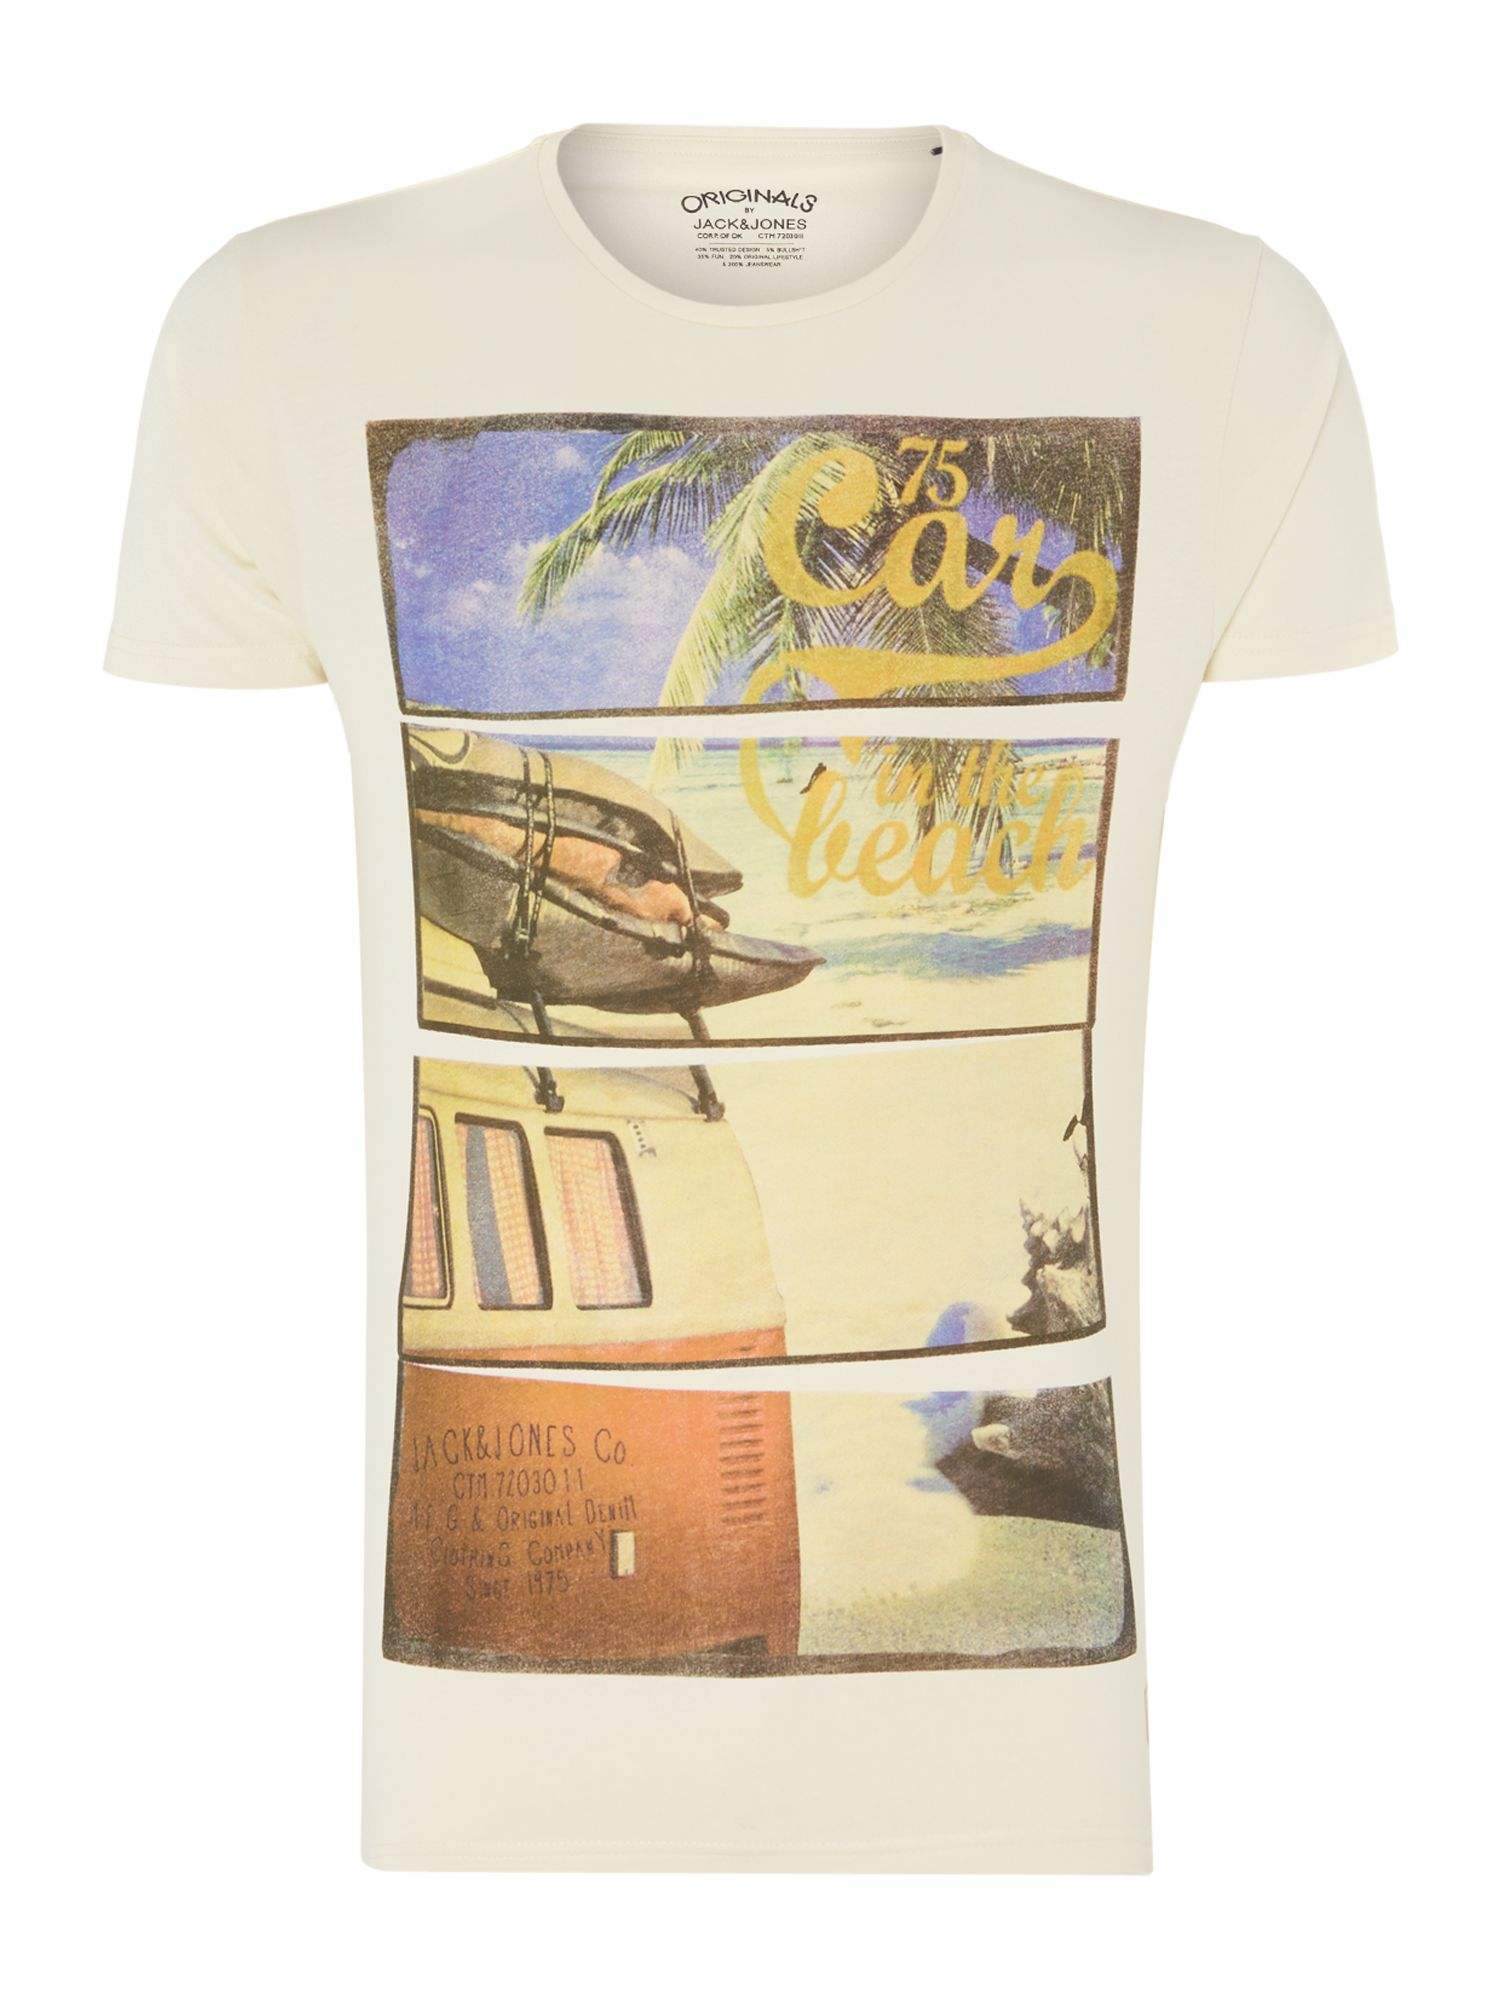 Camper van graphic t-shirt